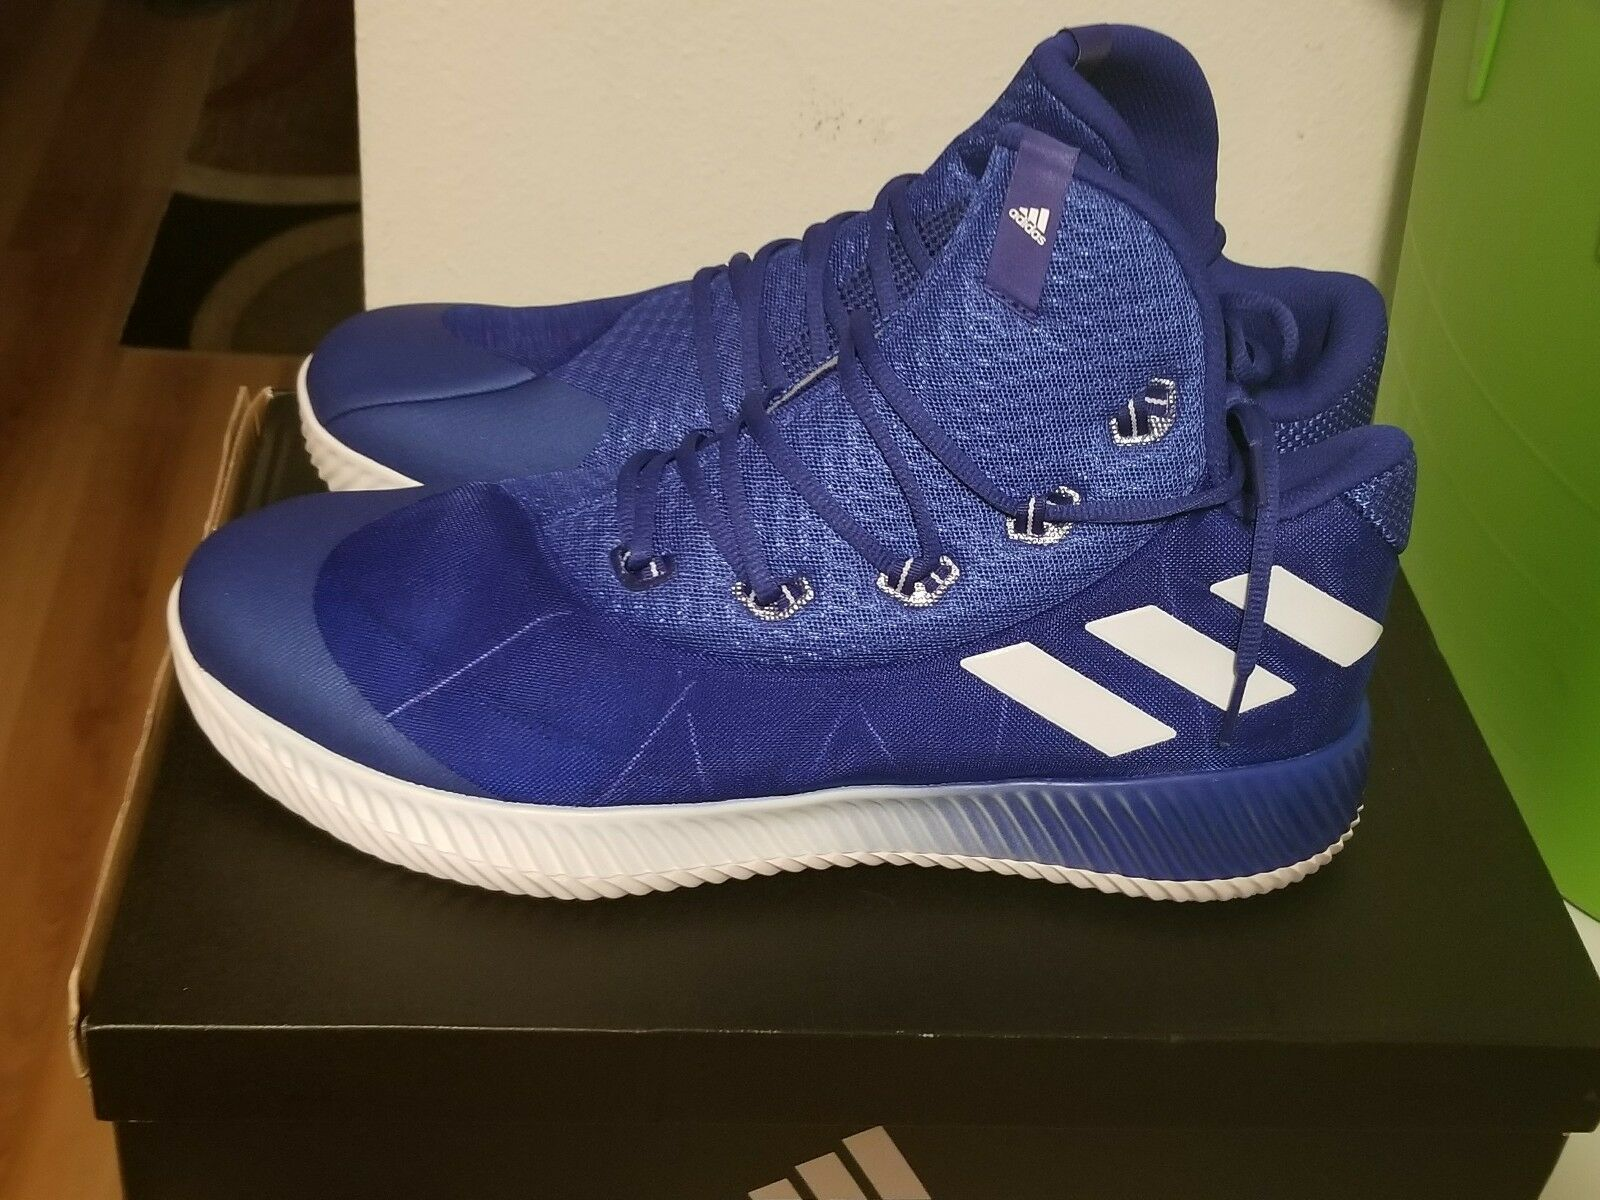 Addidas men's energy bounce bluee basketball shoes size 15